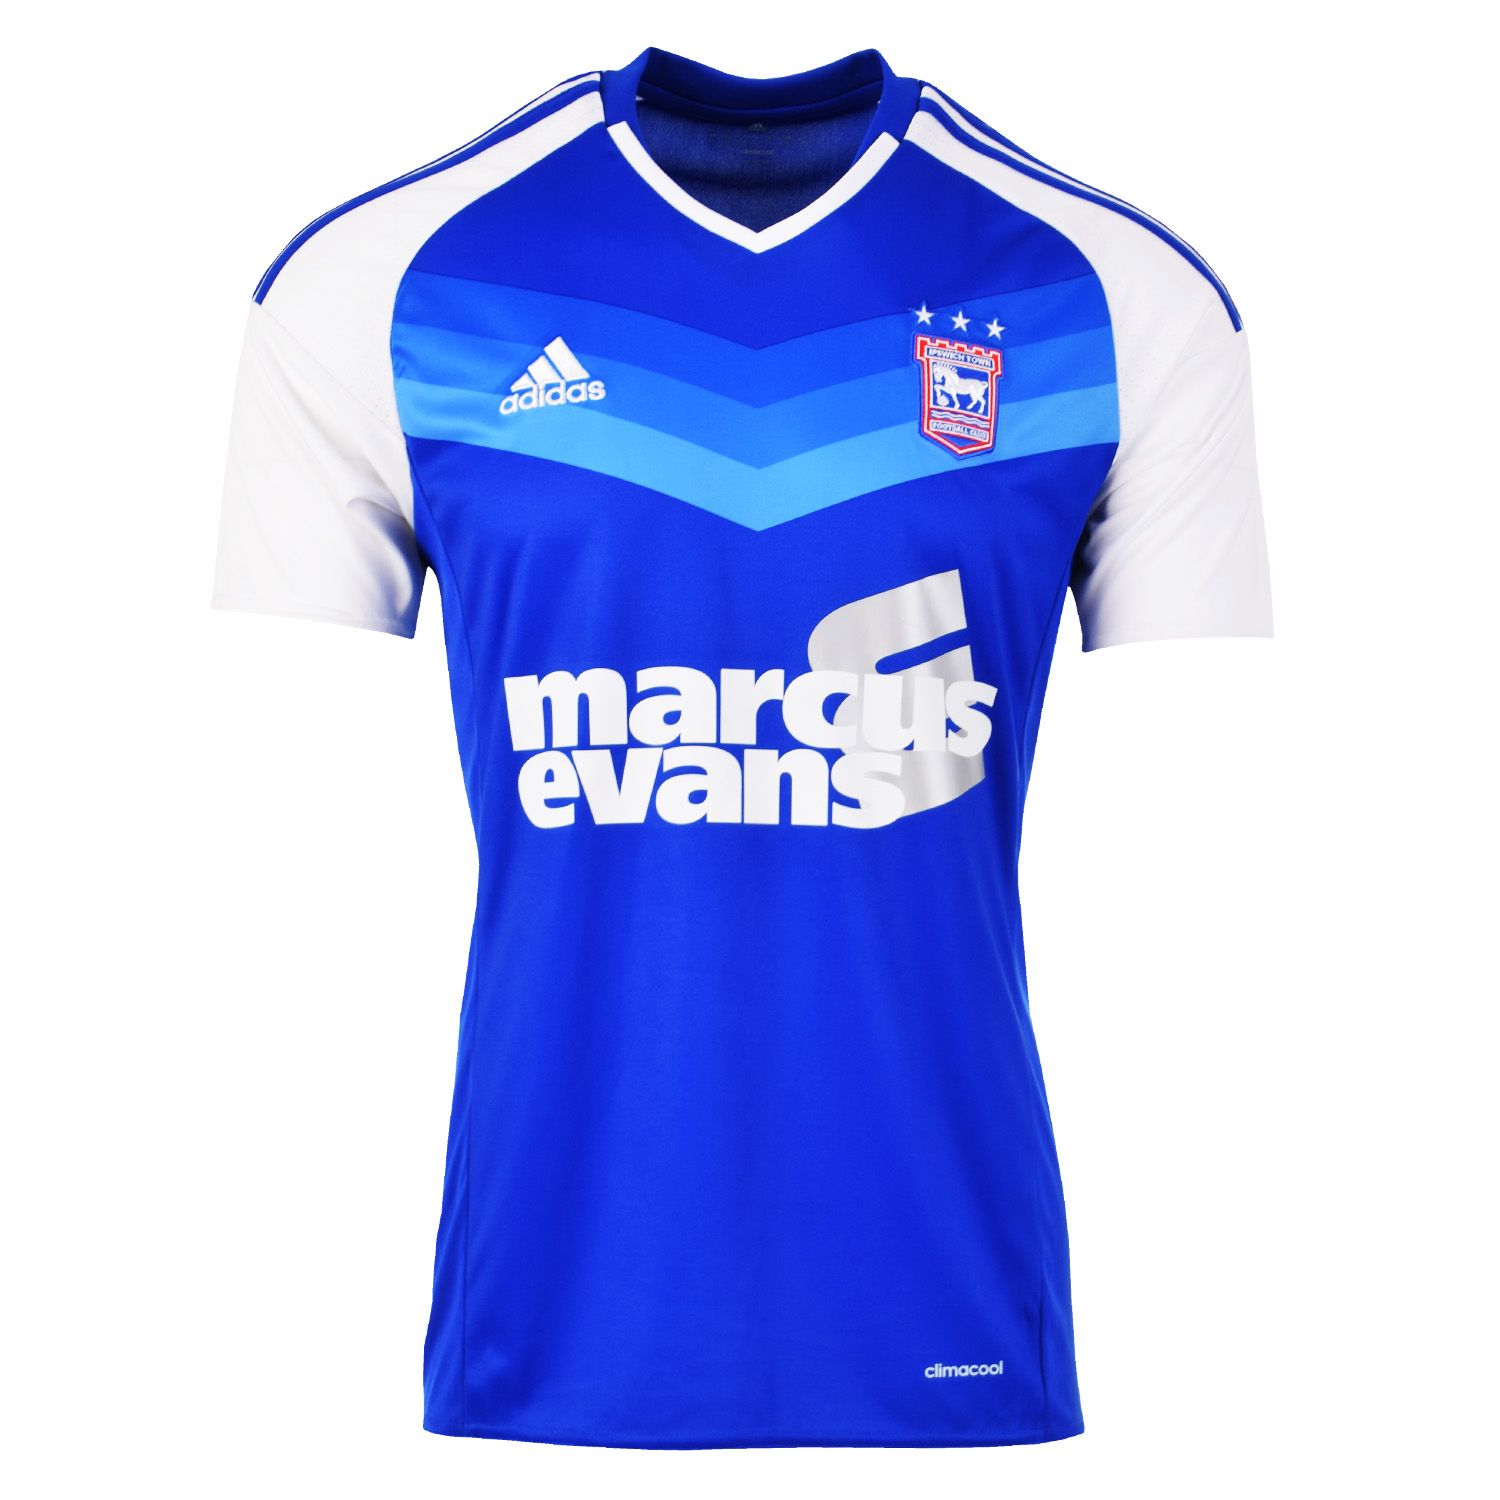 20162017 Ipswich Town Adidas Home Football Shirt